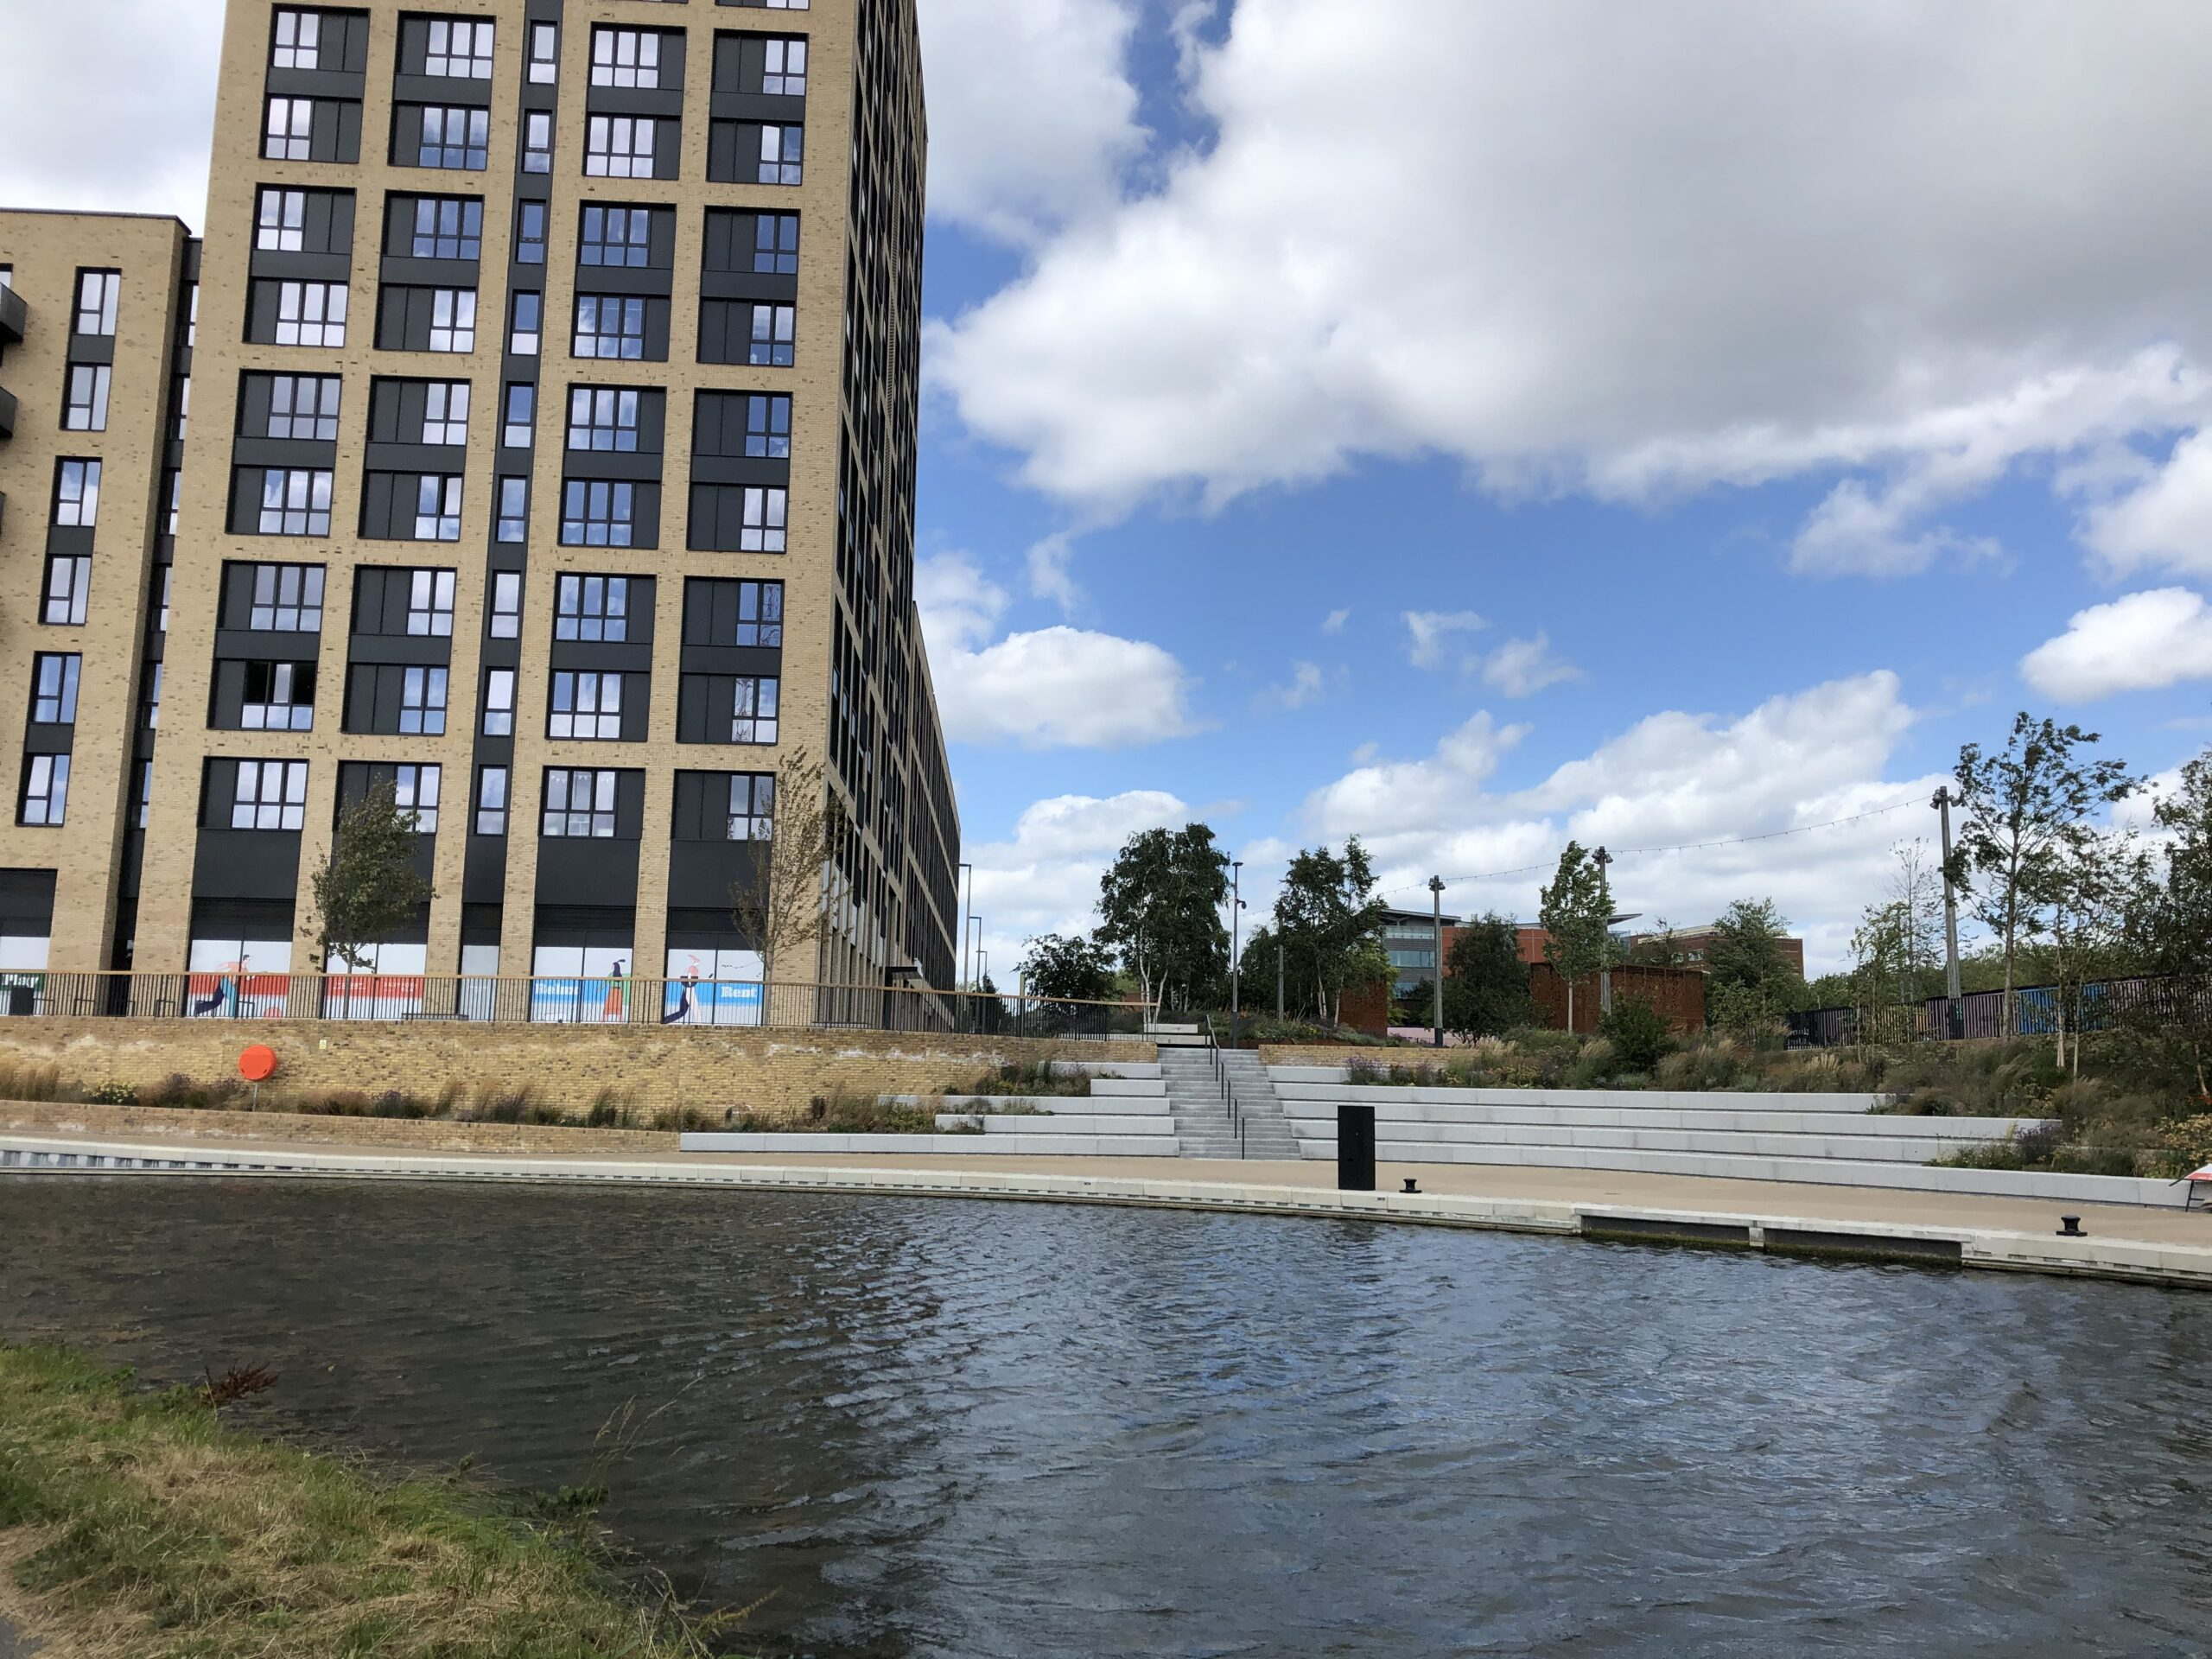 Summer Events at Greenford Quay